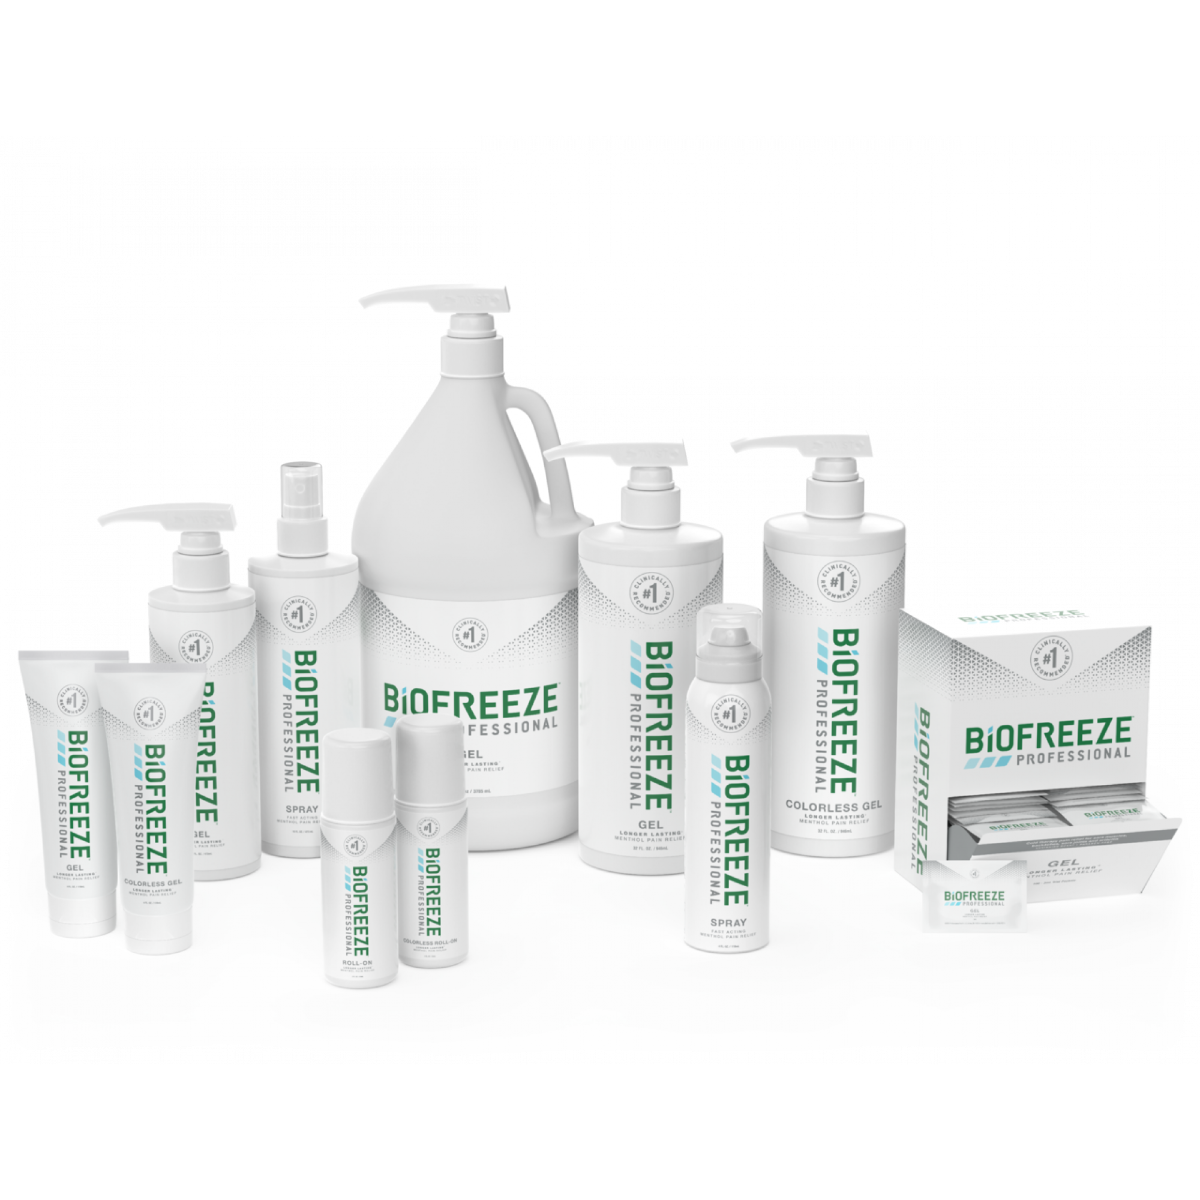 Biofreeze Professional series products in all available options and white packaging